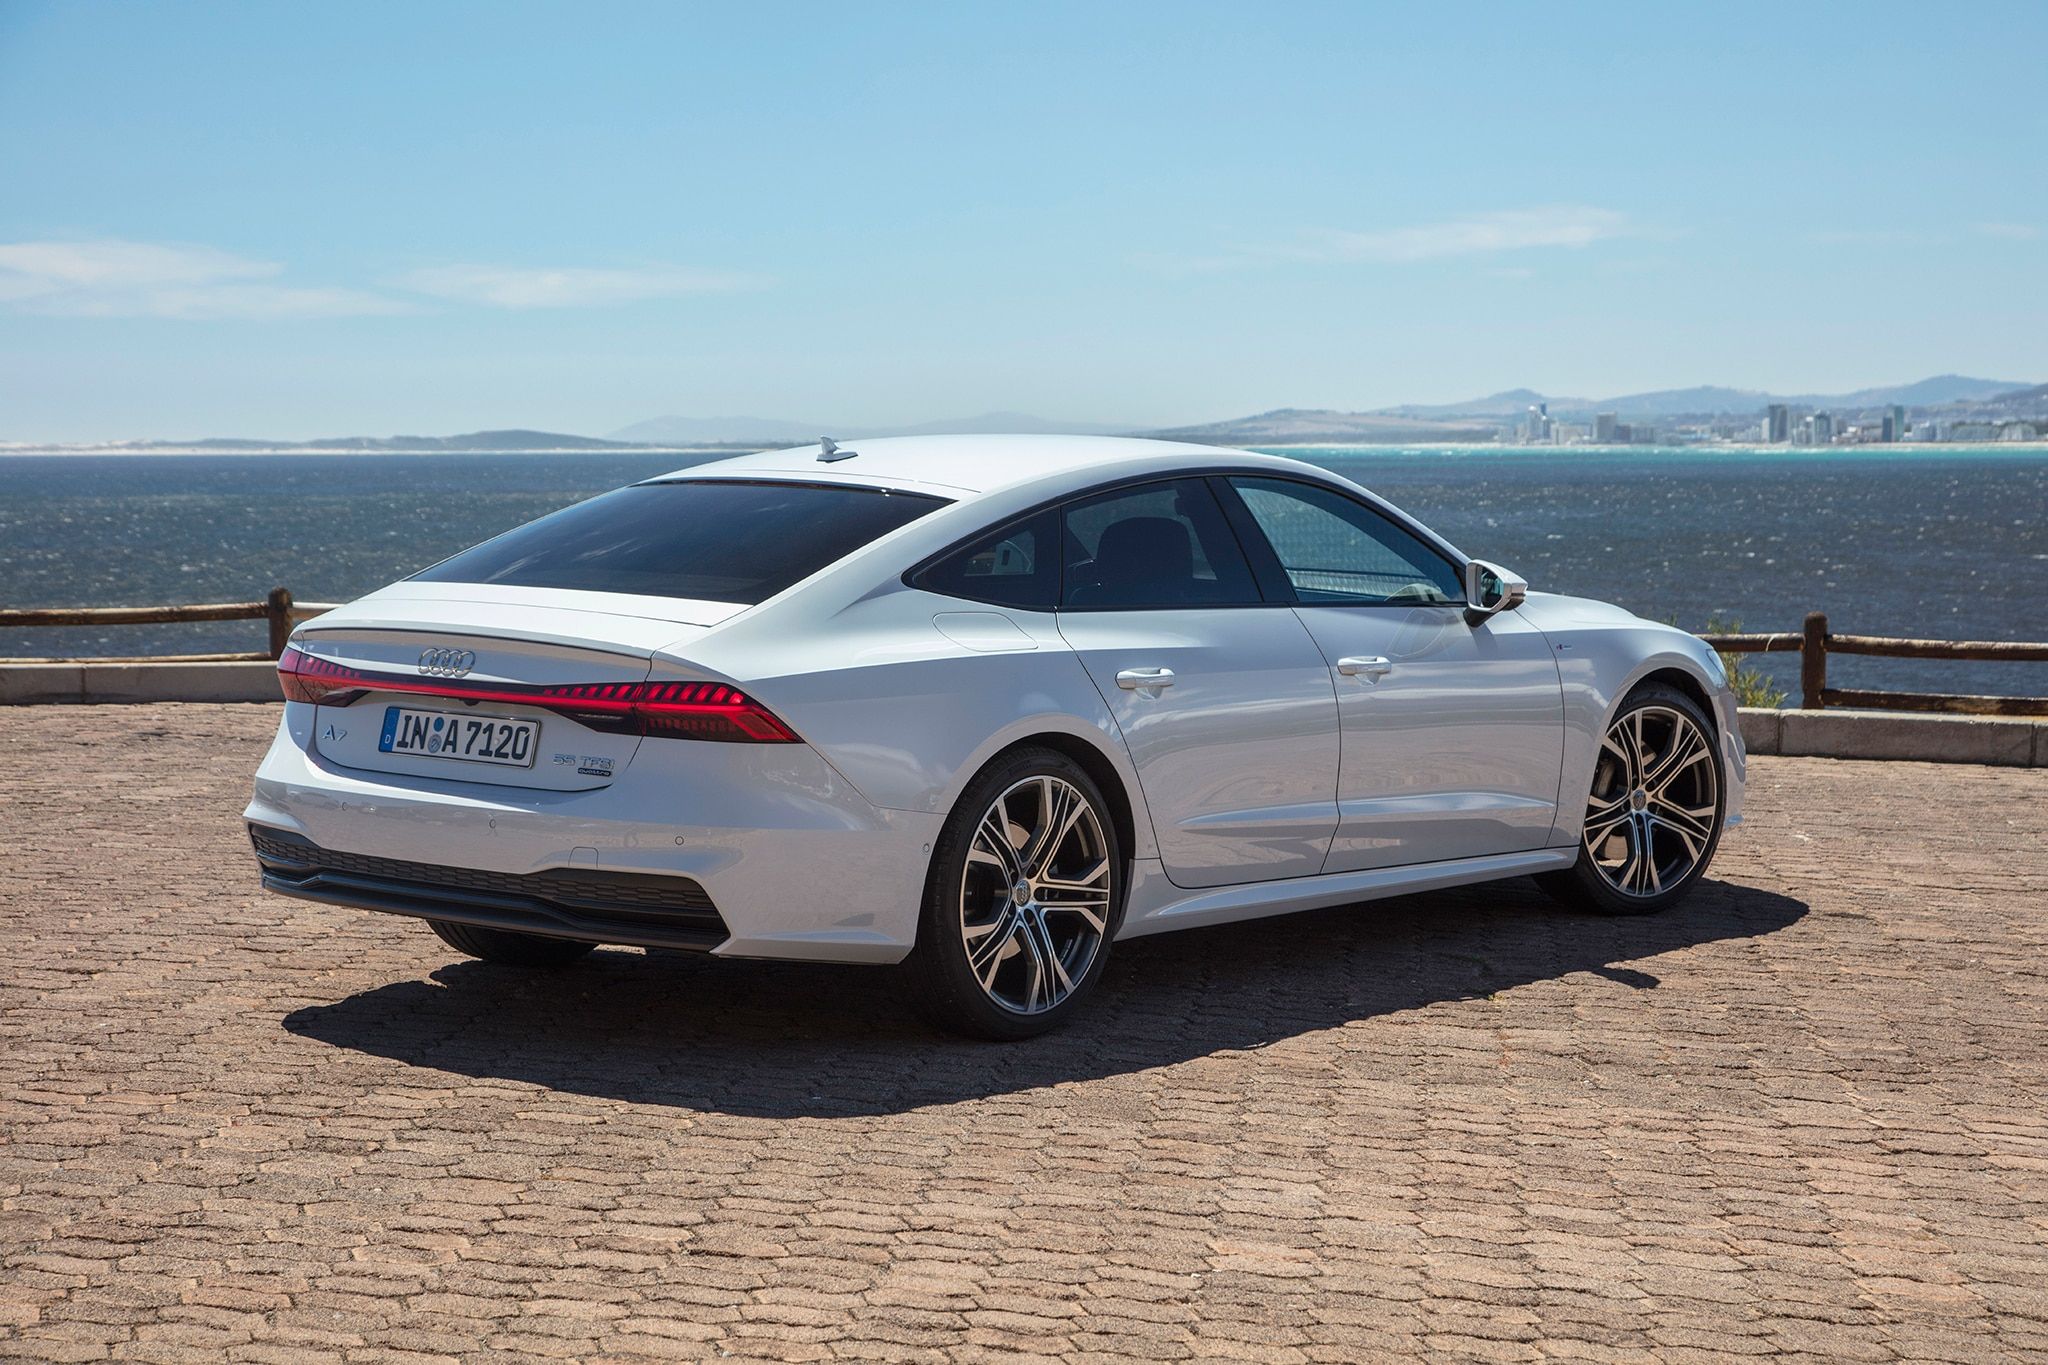 Audi A Sportback First Drive Review Automobile Magazine - Audi a7 2018